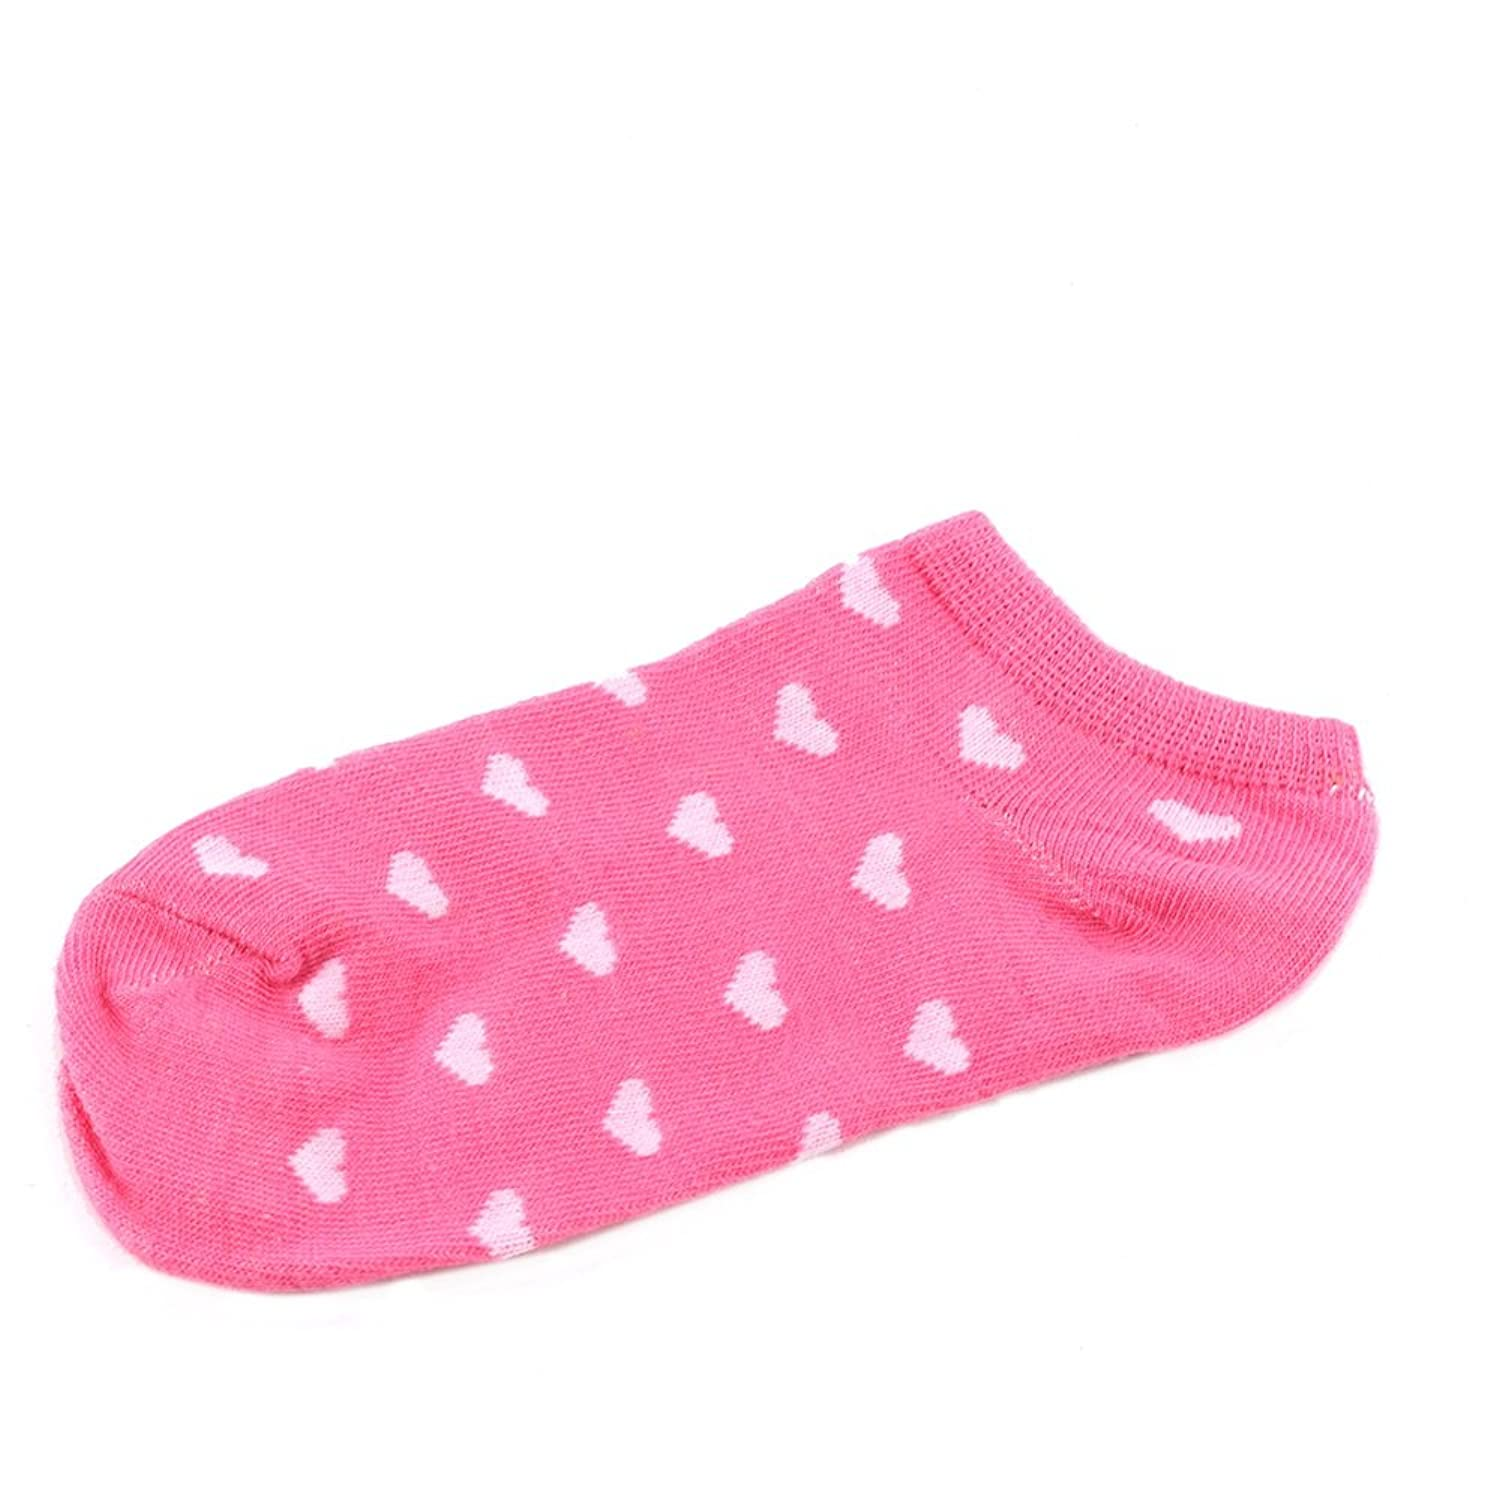 Fashion Women Girls Sports Casual Cute Heart Ankle High Low Cut Cotton Comfortable Socks Grey Hot^Red